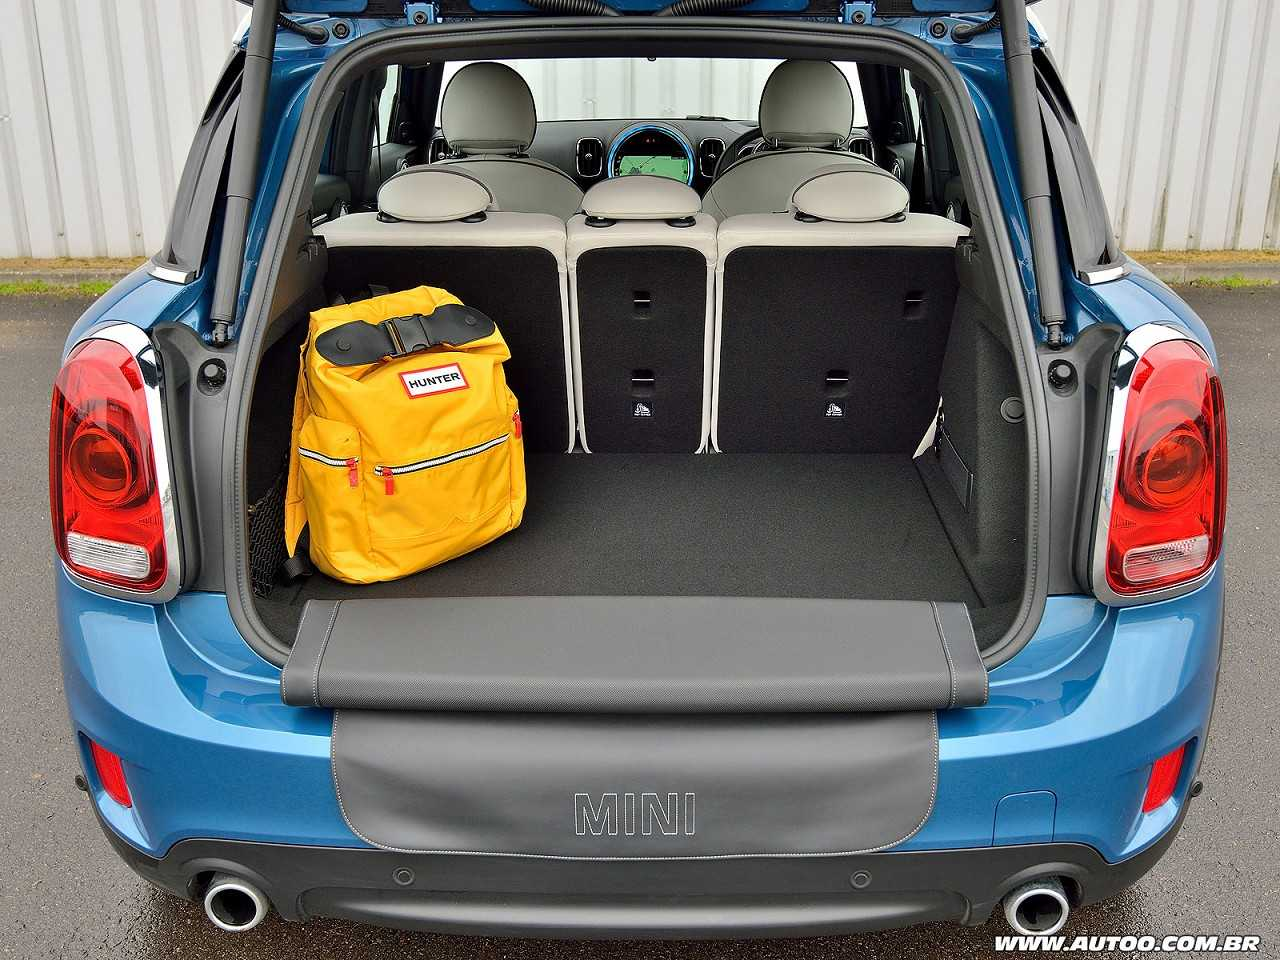 Mini Countryman 2017 - porta-malas